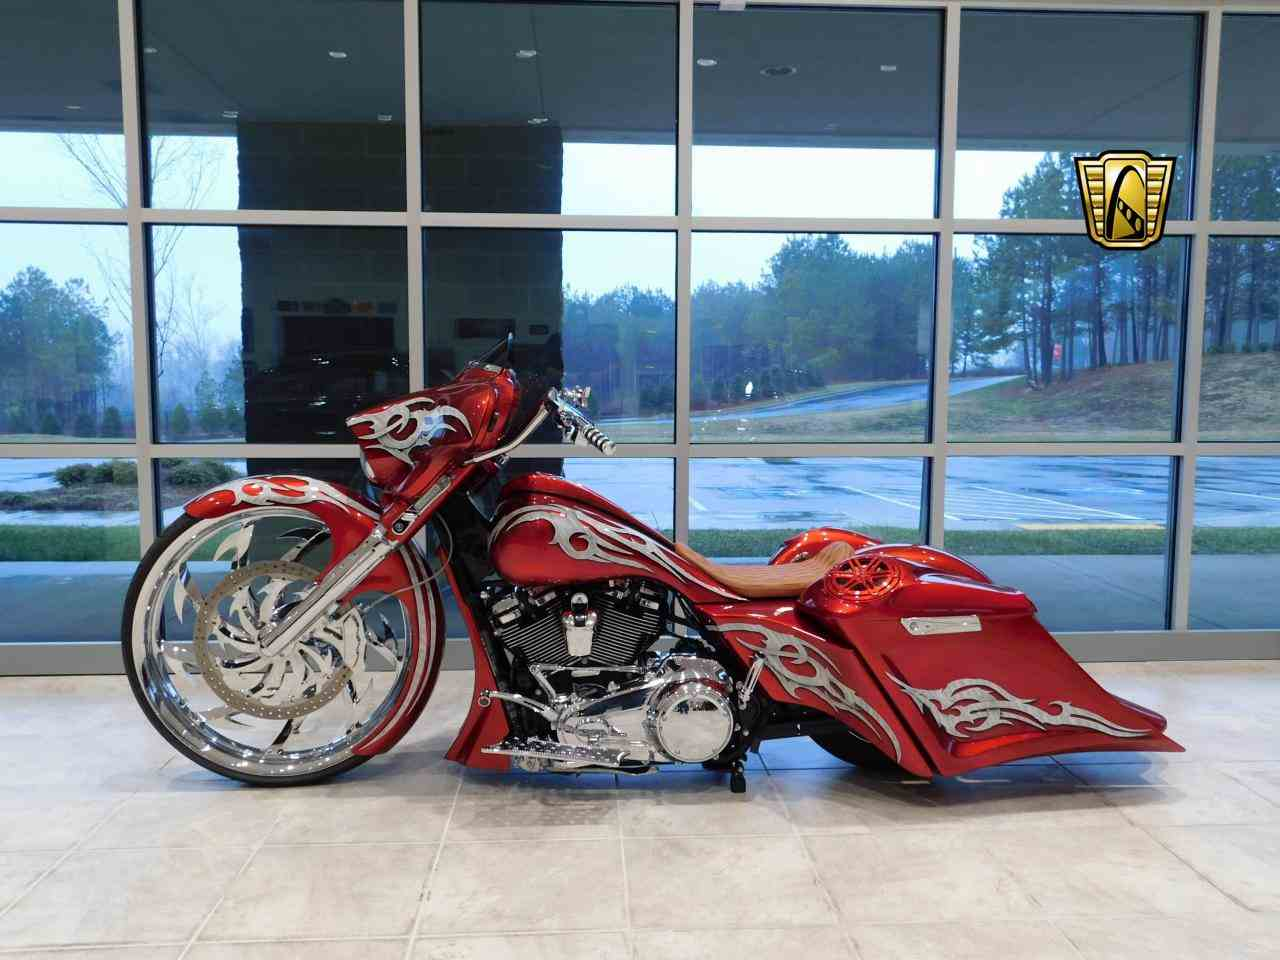 Large Picture of 2017 Harley-Davidson Motorcycle located in Alpharetta Georgia Offered by Gateway Classic Cars - Atlanta - MOAJ